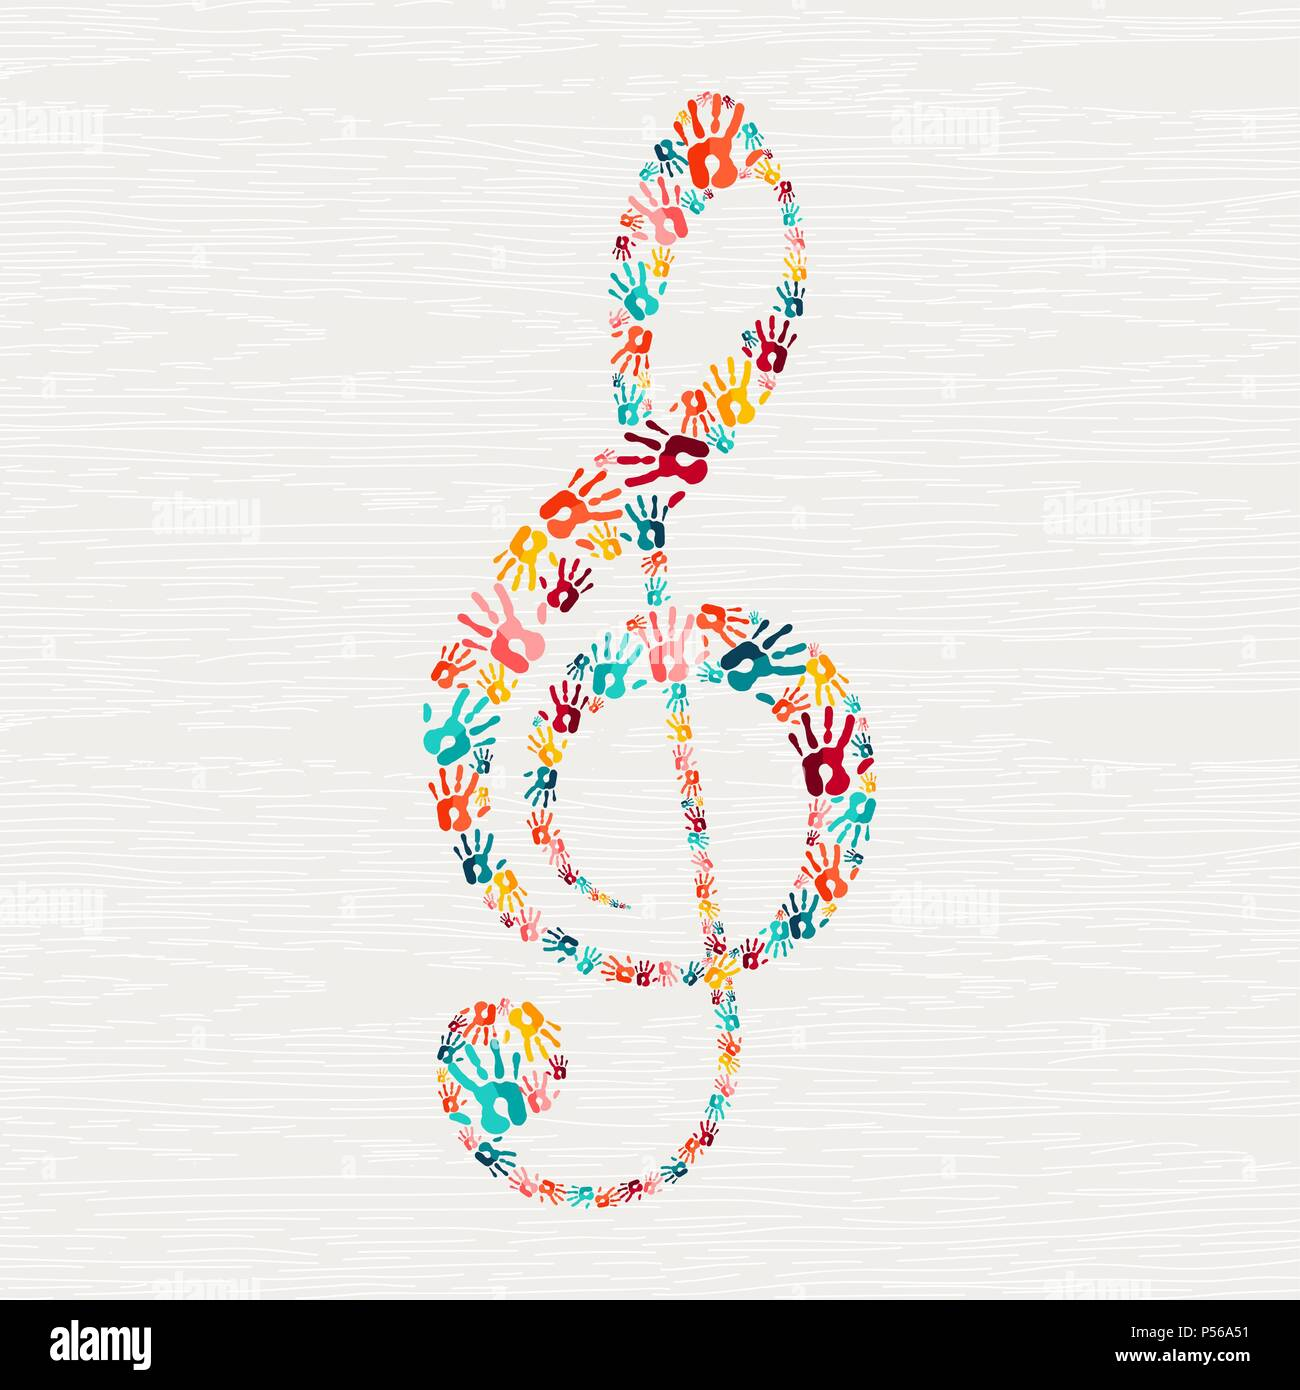 Human Hand Print Musical Note Shape Concept Colorful Paint